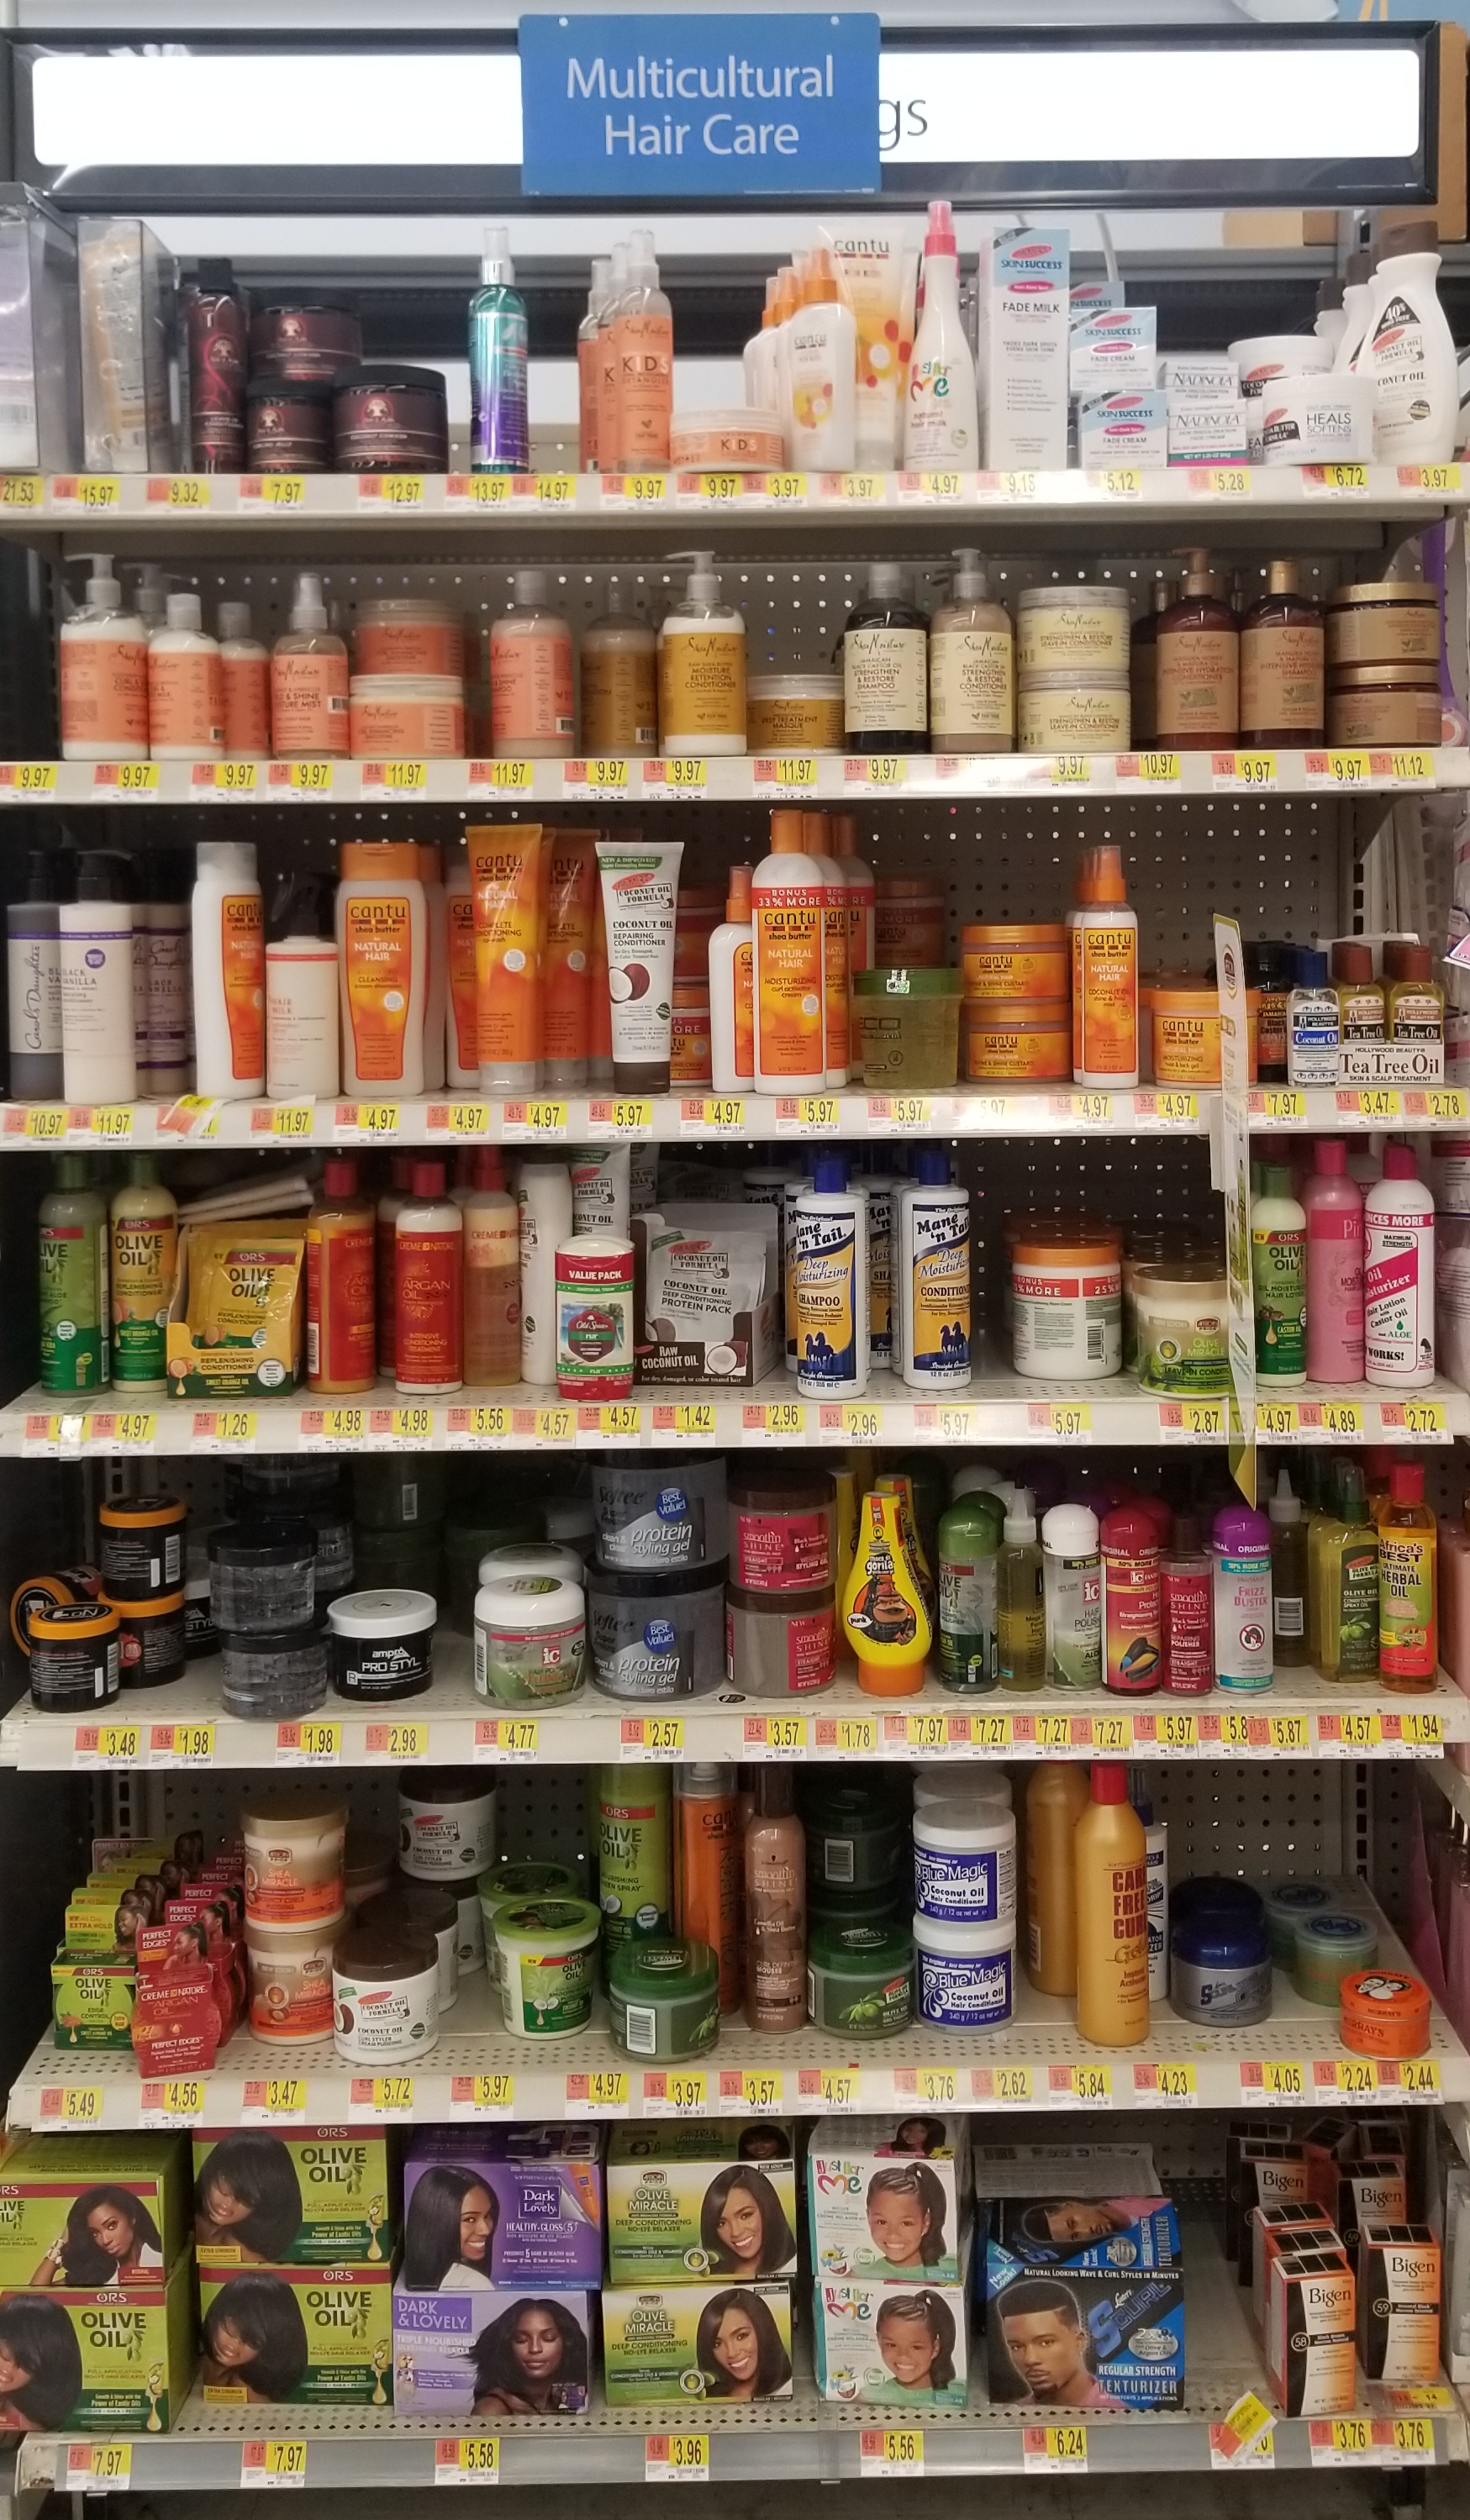 Multicultural hair care section at Walmart